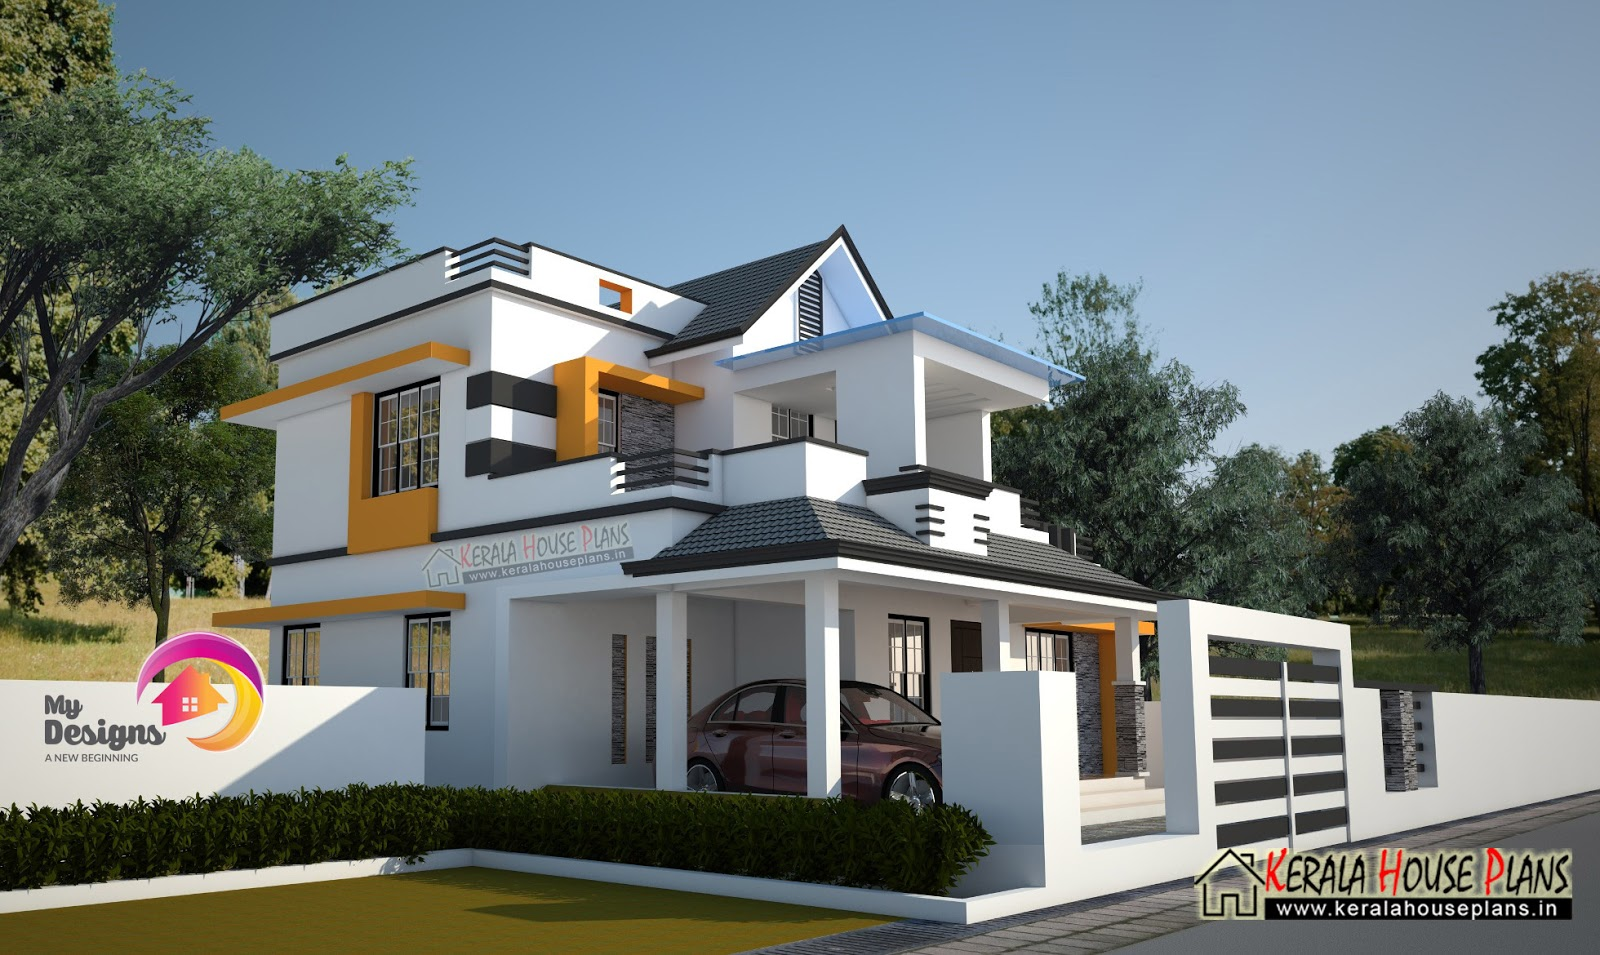 3 bedroom 2 story house design kerala house plans for Two storey house plans in kerala